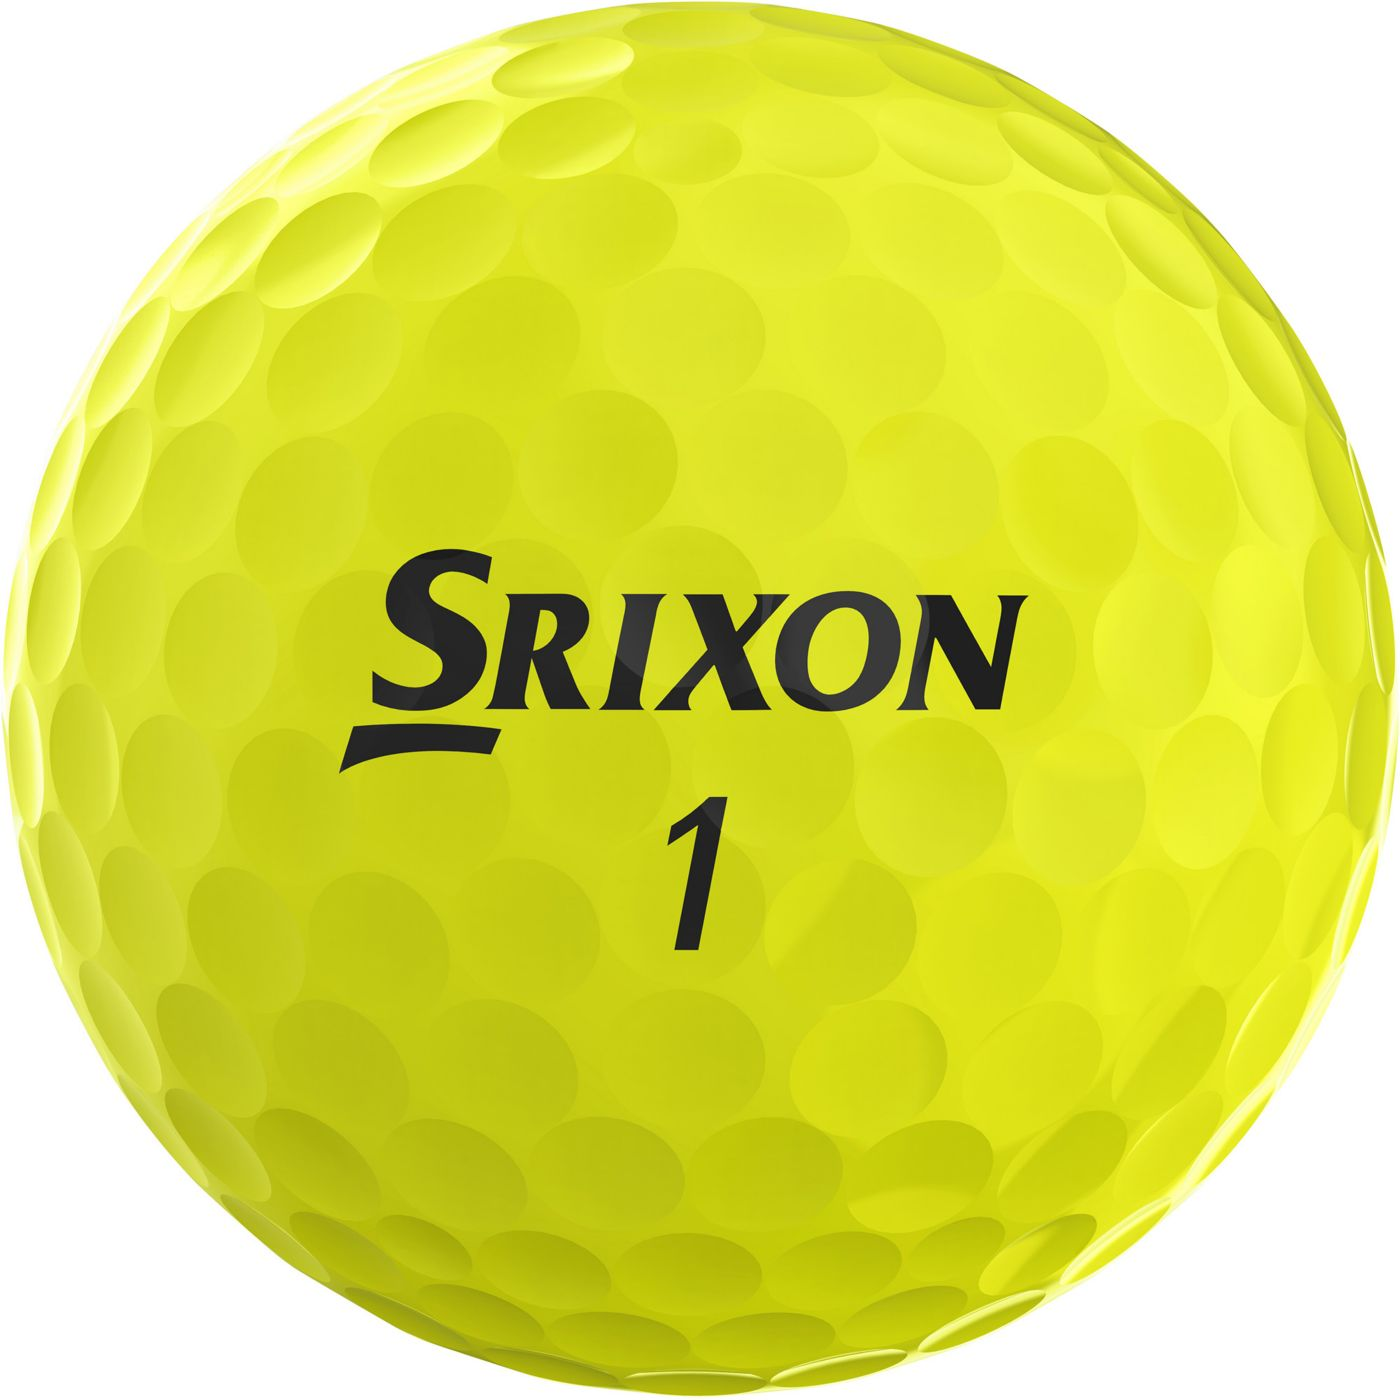 Srixon 2019 Q-STAR Yellow Golf Balls